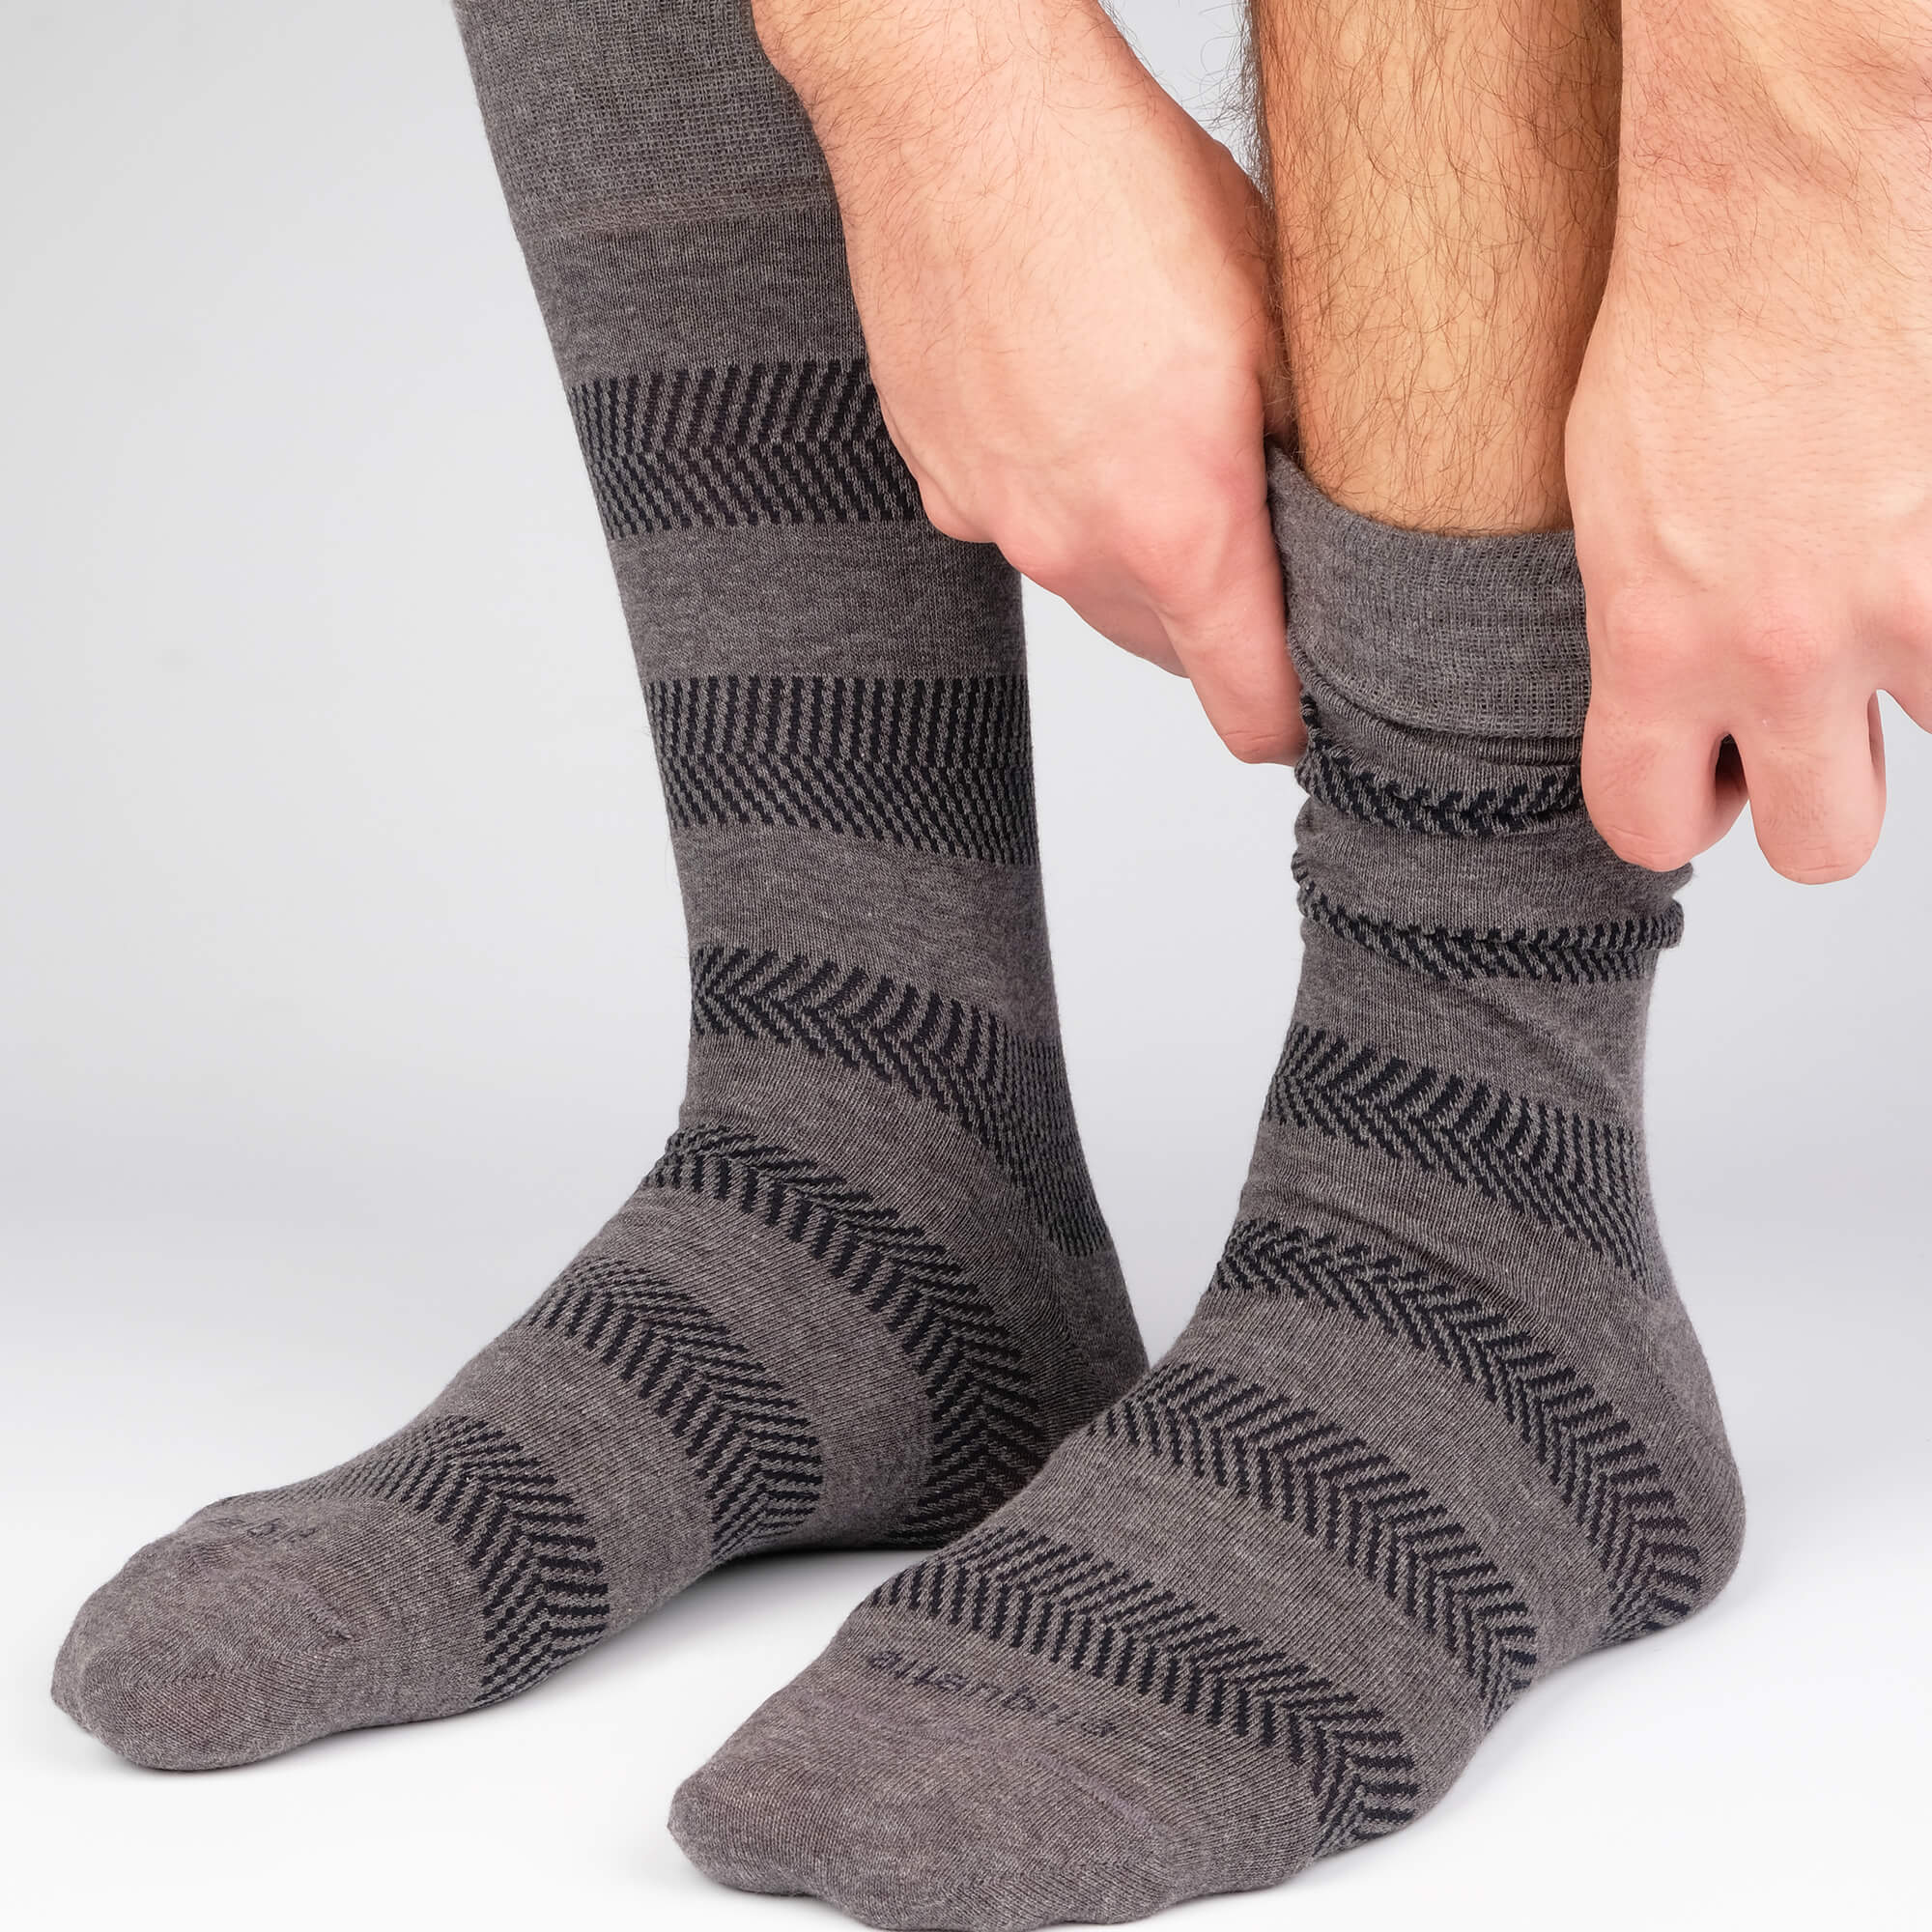 Mens Socks - Herringbone Stripes - Dark Grey⎪Etiquette Clothiers